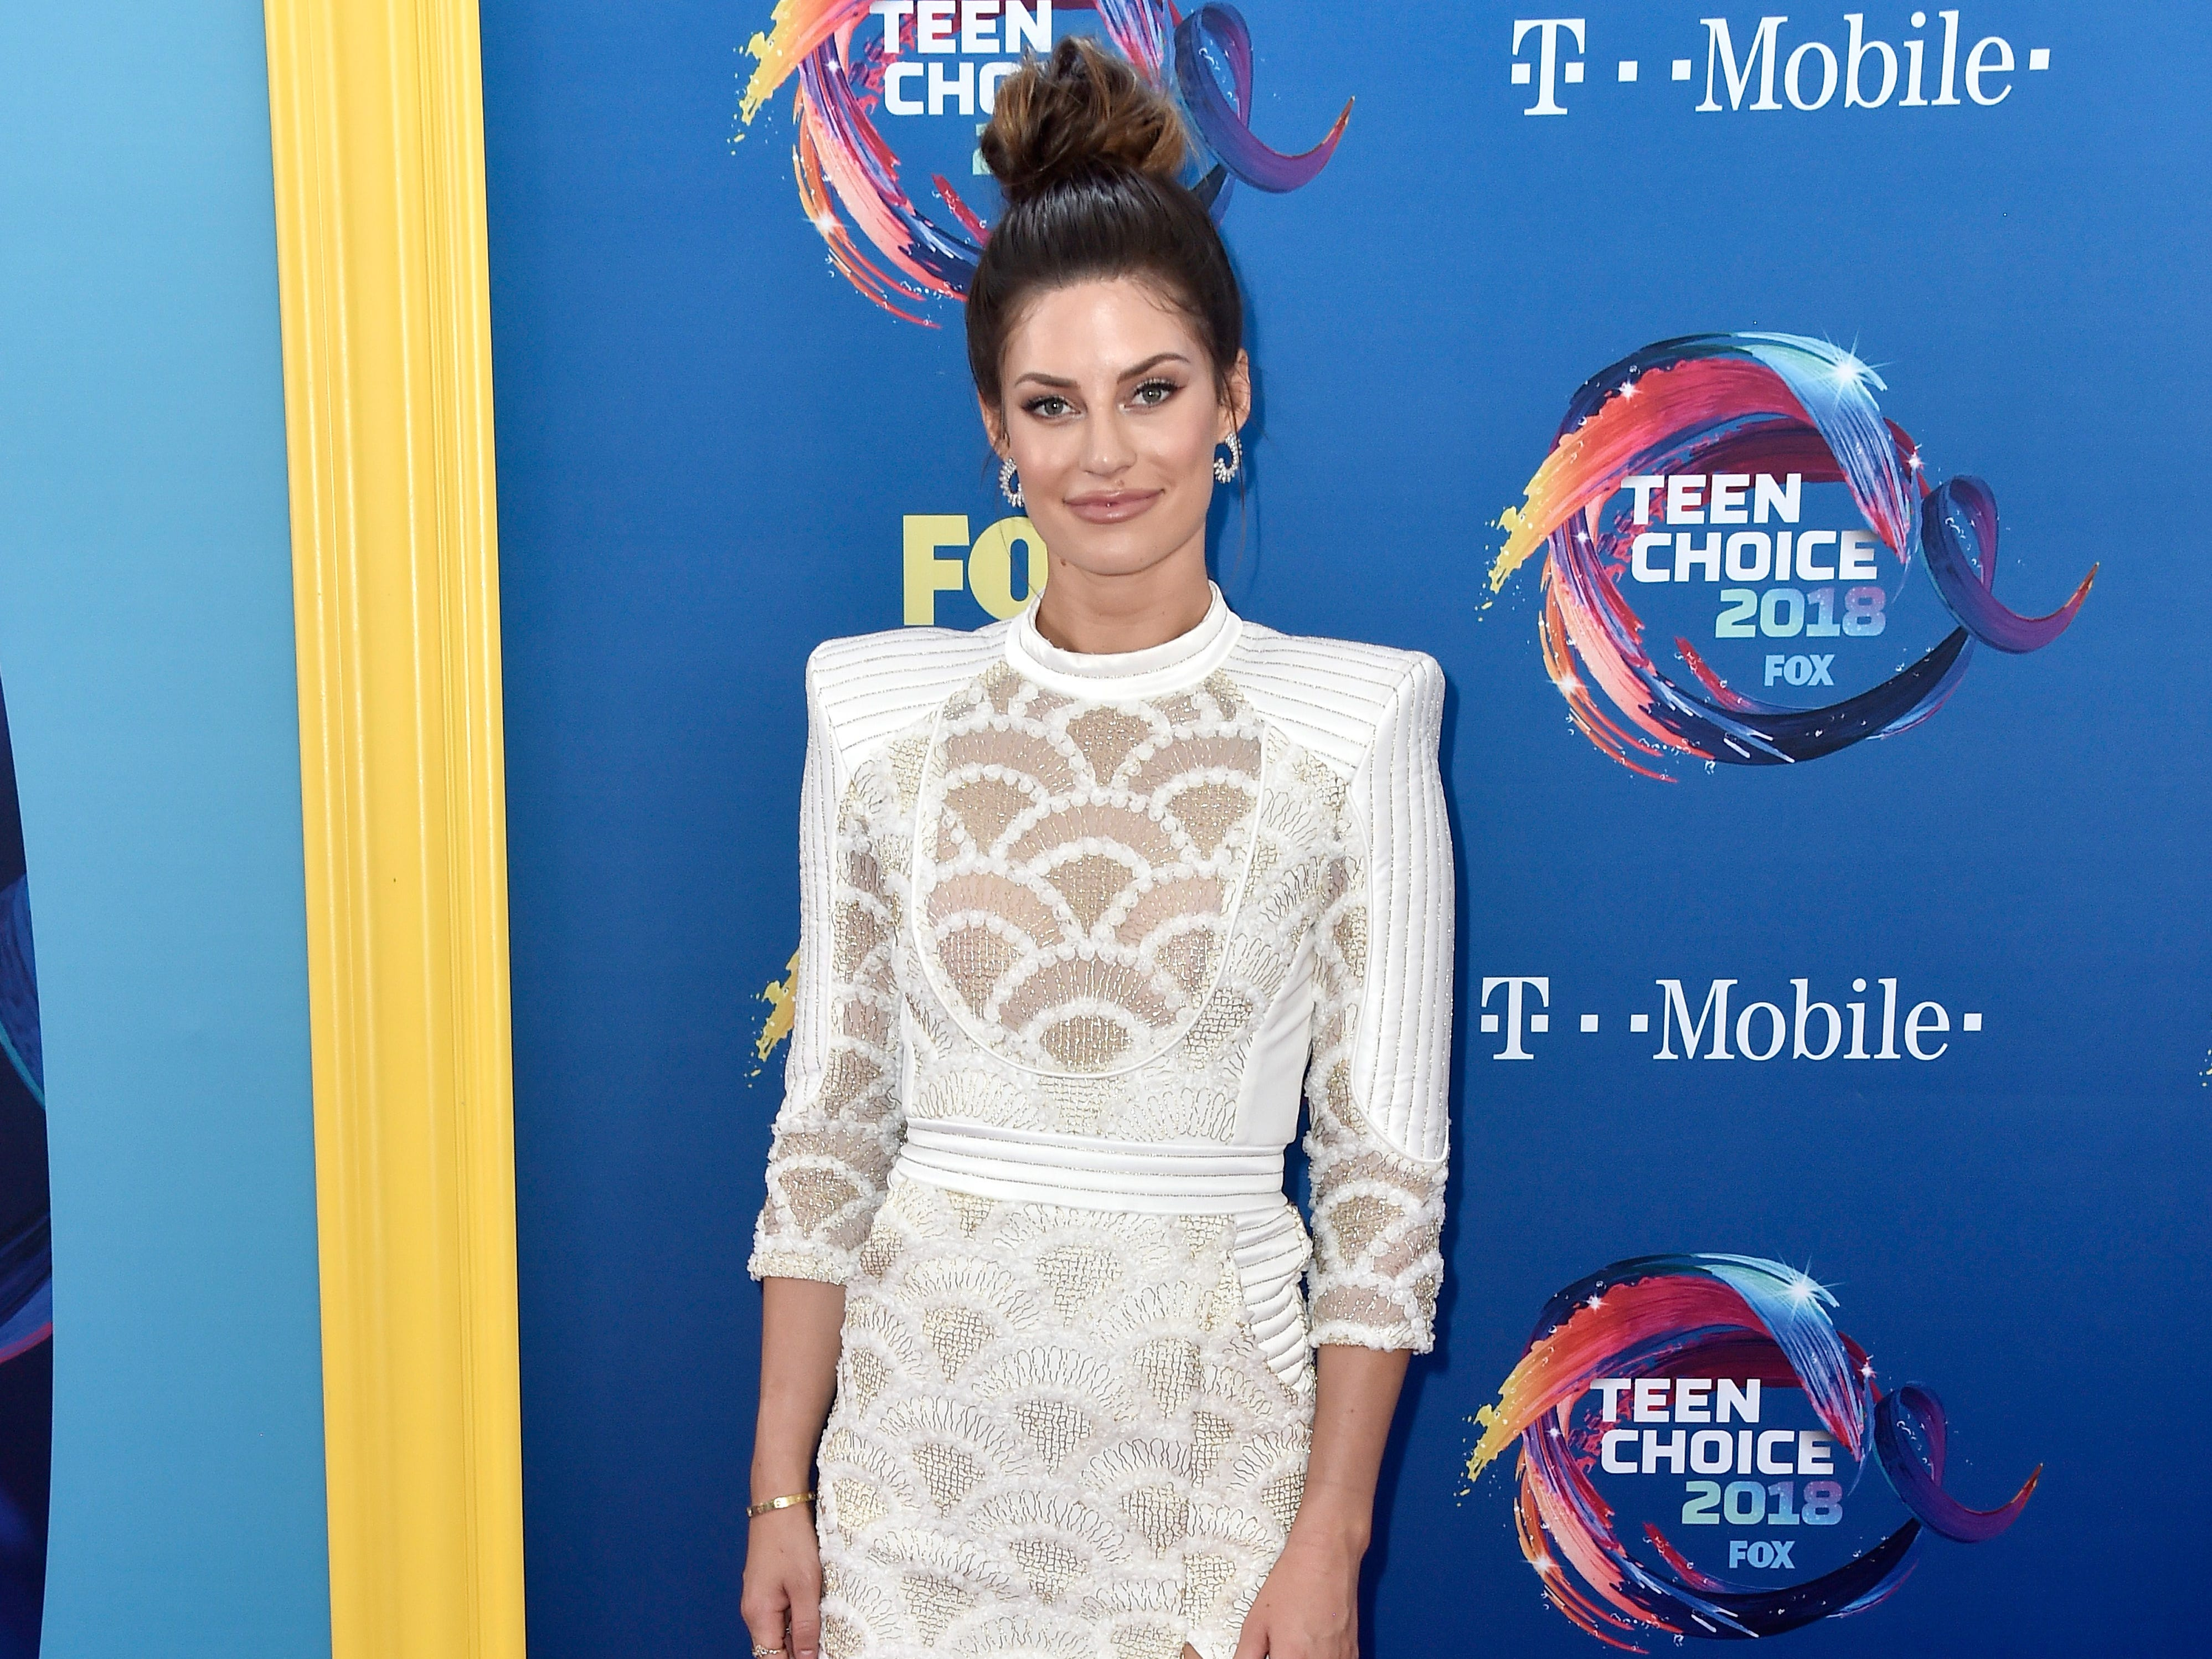 INGLEWOOD, CA - AUGUST 12:  Hannah Stocking attends FOX's Teen Choice Awards at The Forum on August 12, 2018 in Inglewood, California.  (Photo by Frazer Harrison/Getty Images) ORG XMIT: 775199256 ORIG FILE ID: 1015807386